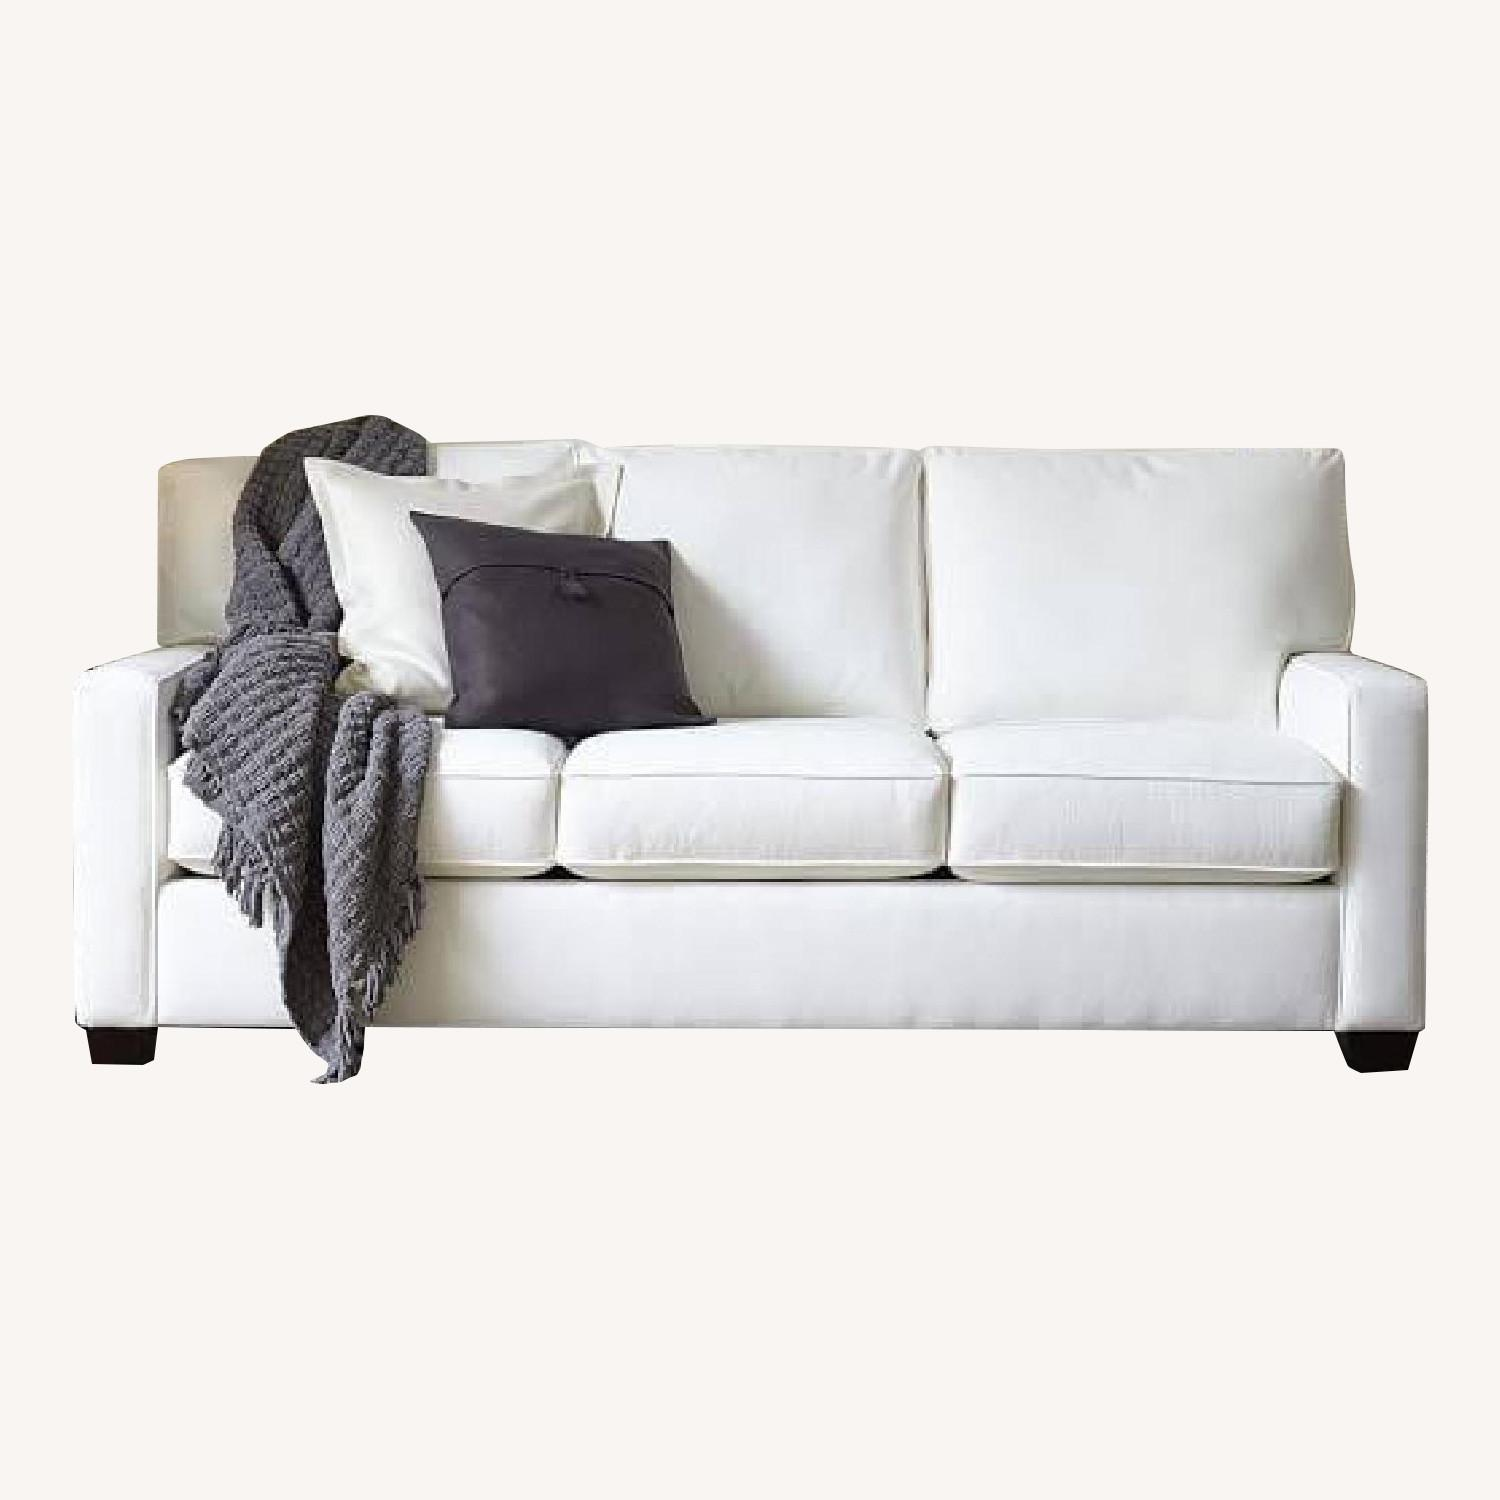 Pottery Barn Buchanan Square Arm Upholstered Couch - image-0